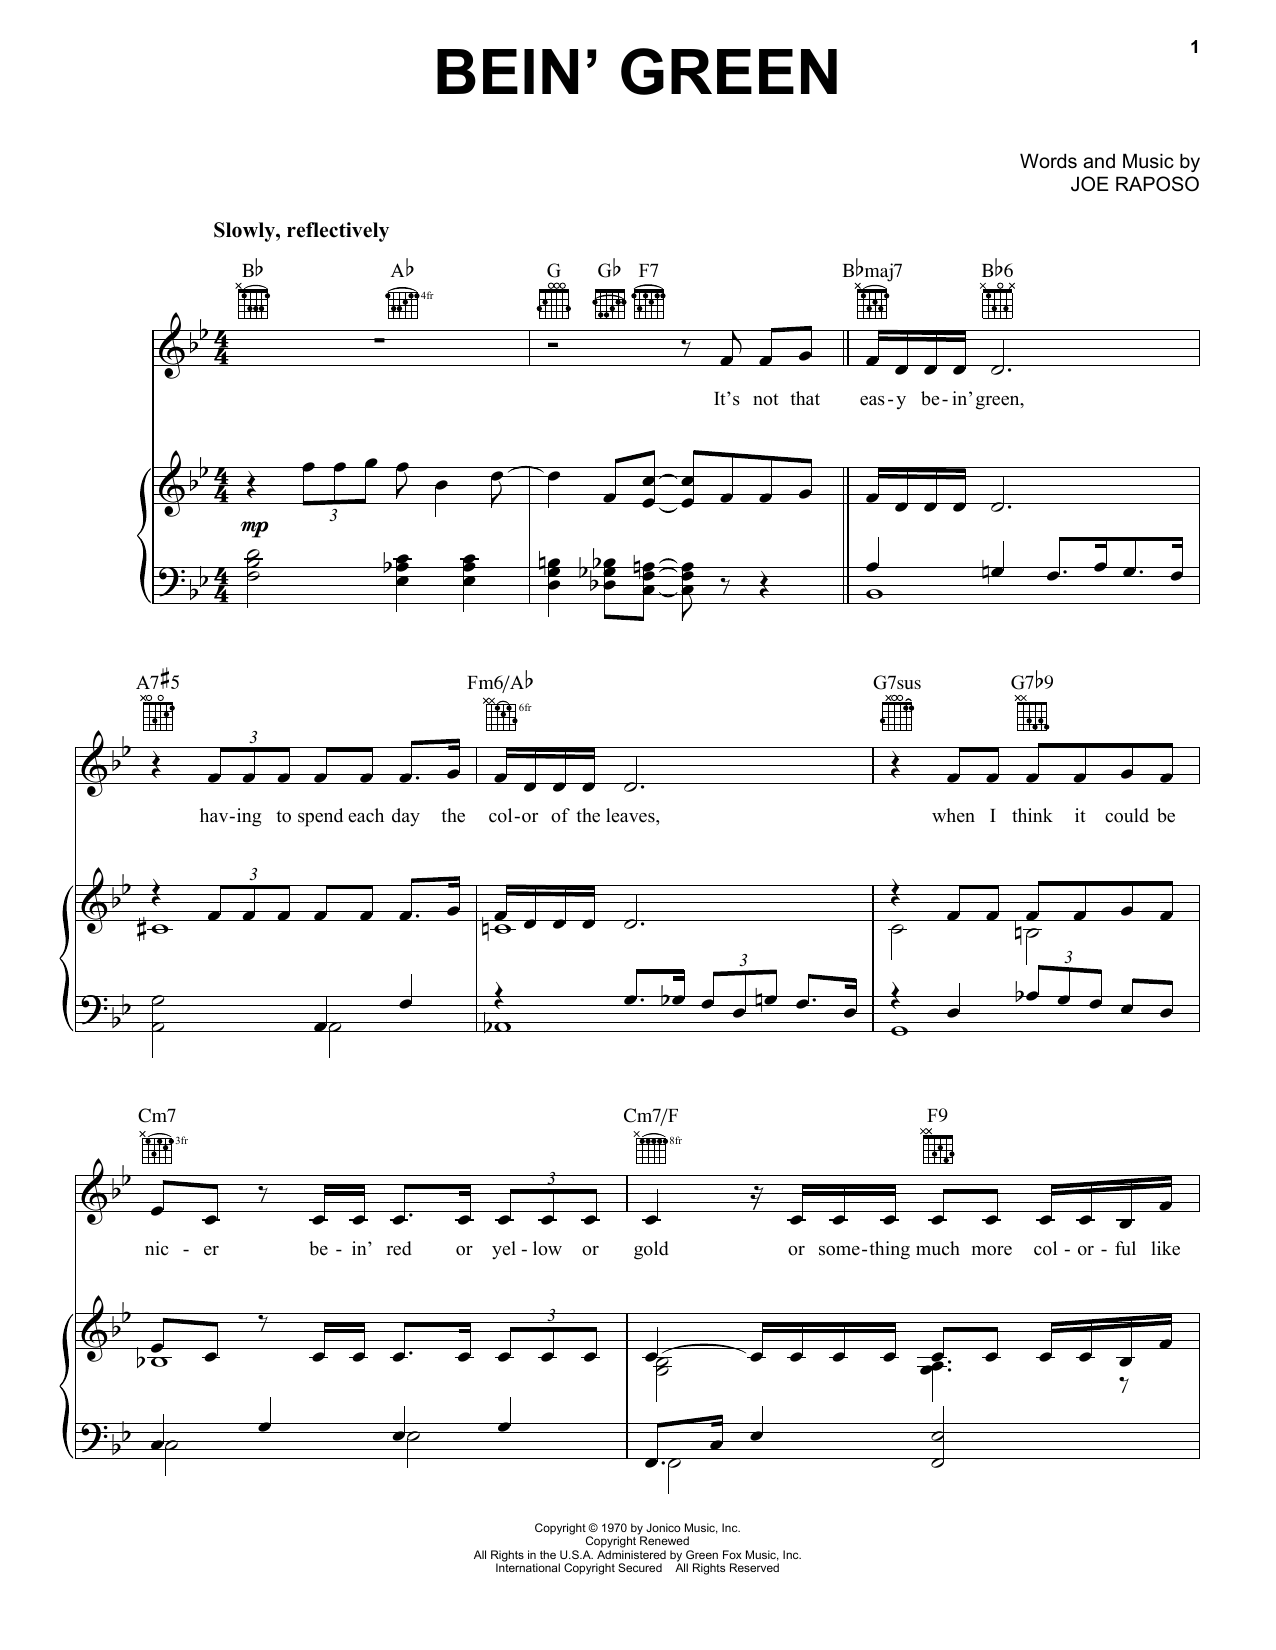 Bein' Green Sheet Music